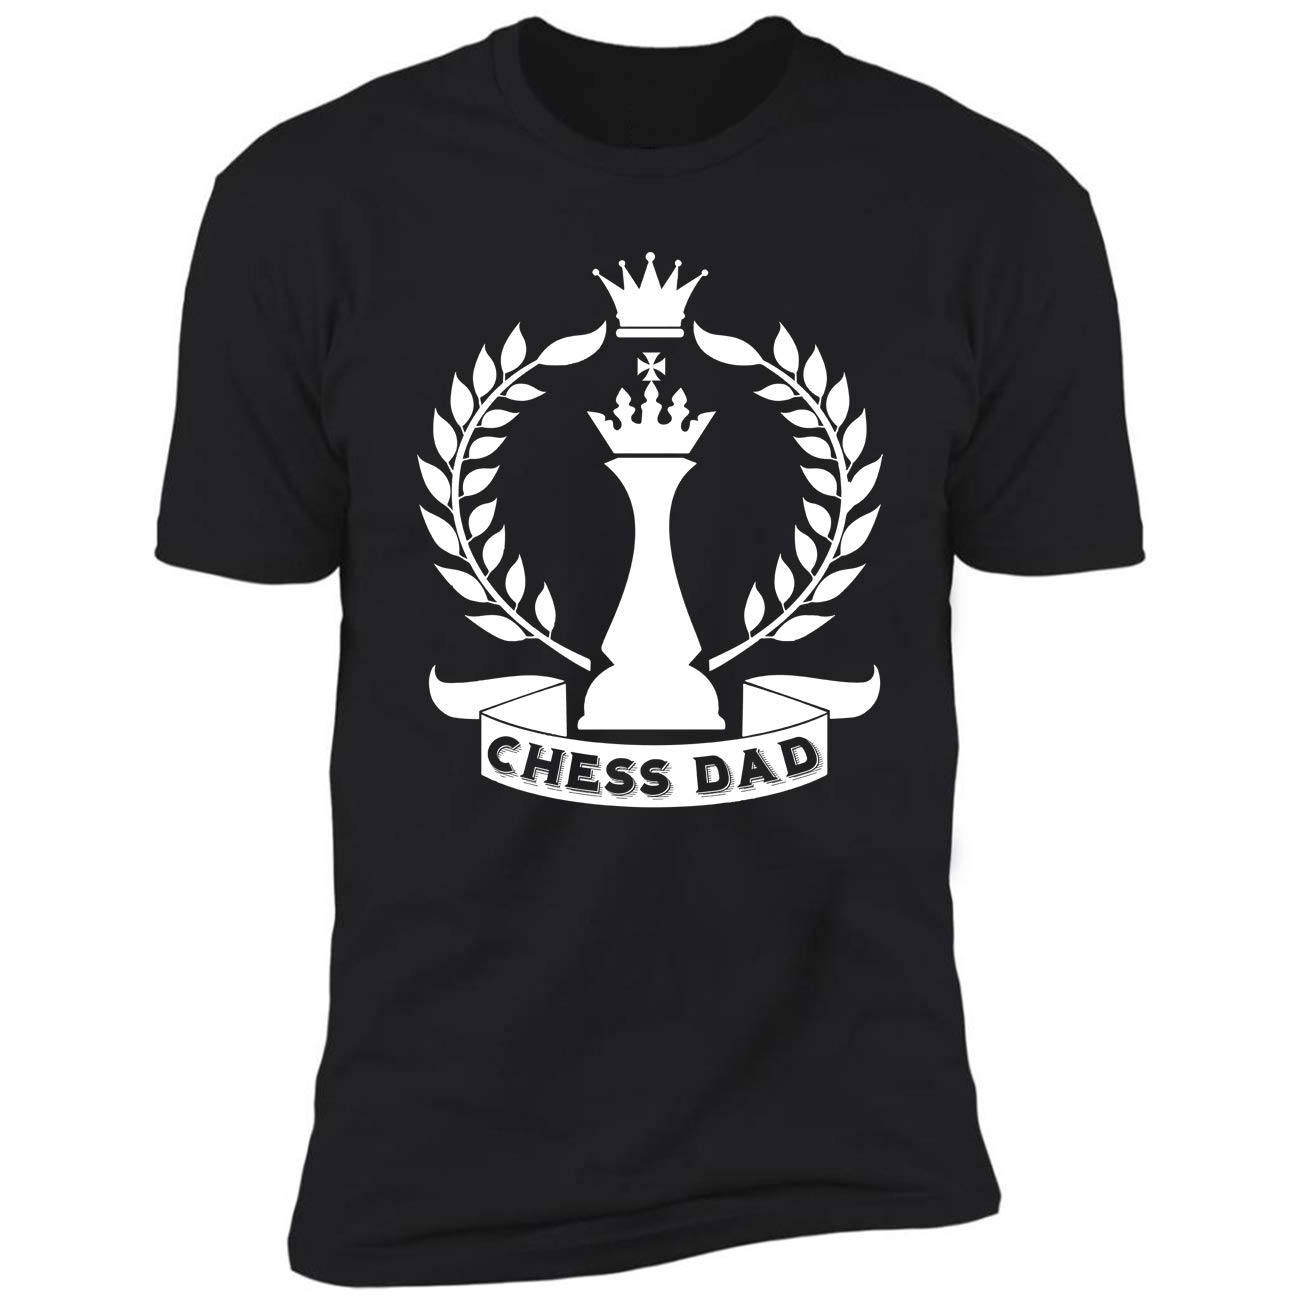 Chess Dad For Pattern Tea Daycoach Club Team Ted Tshirt